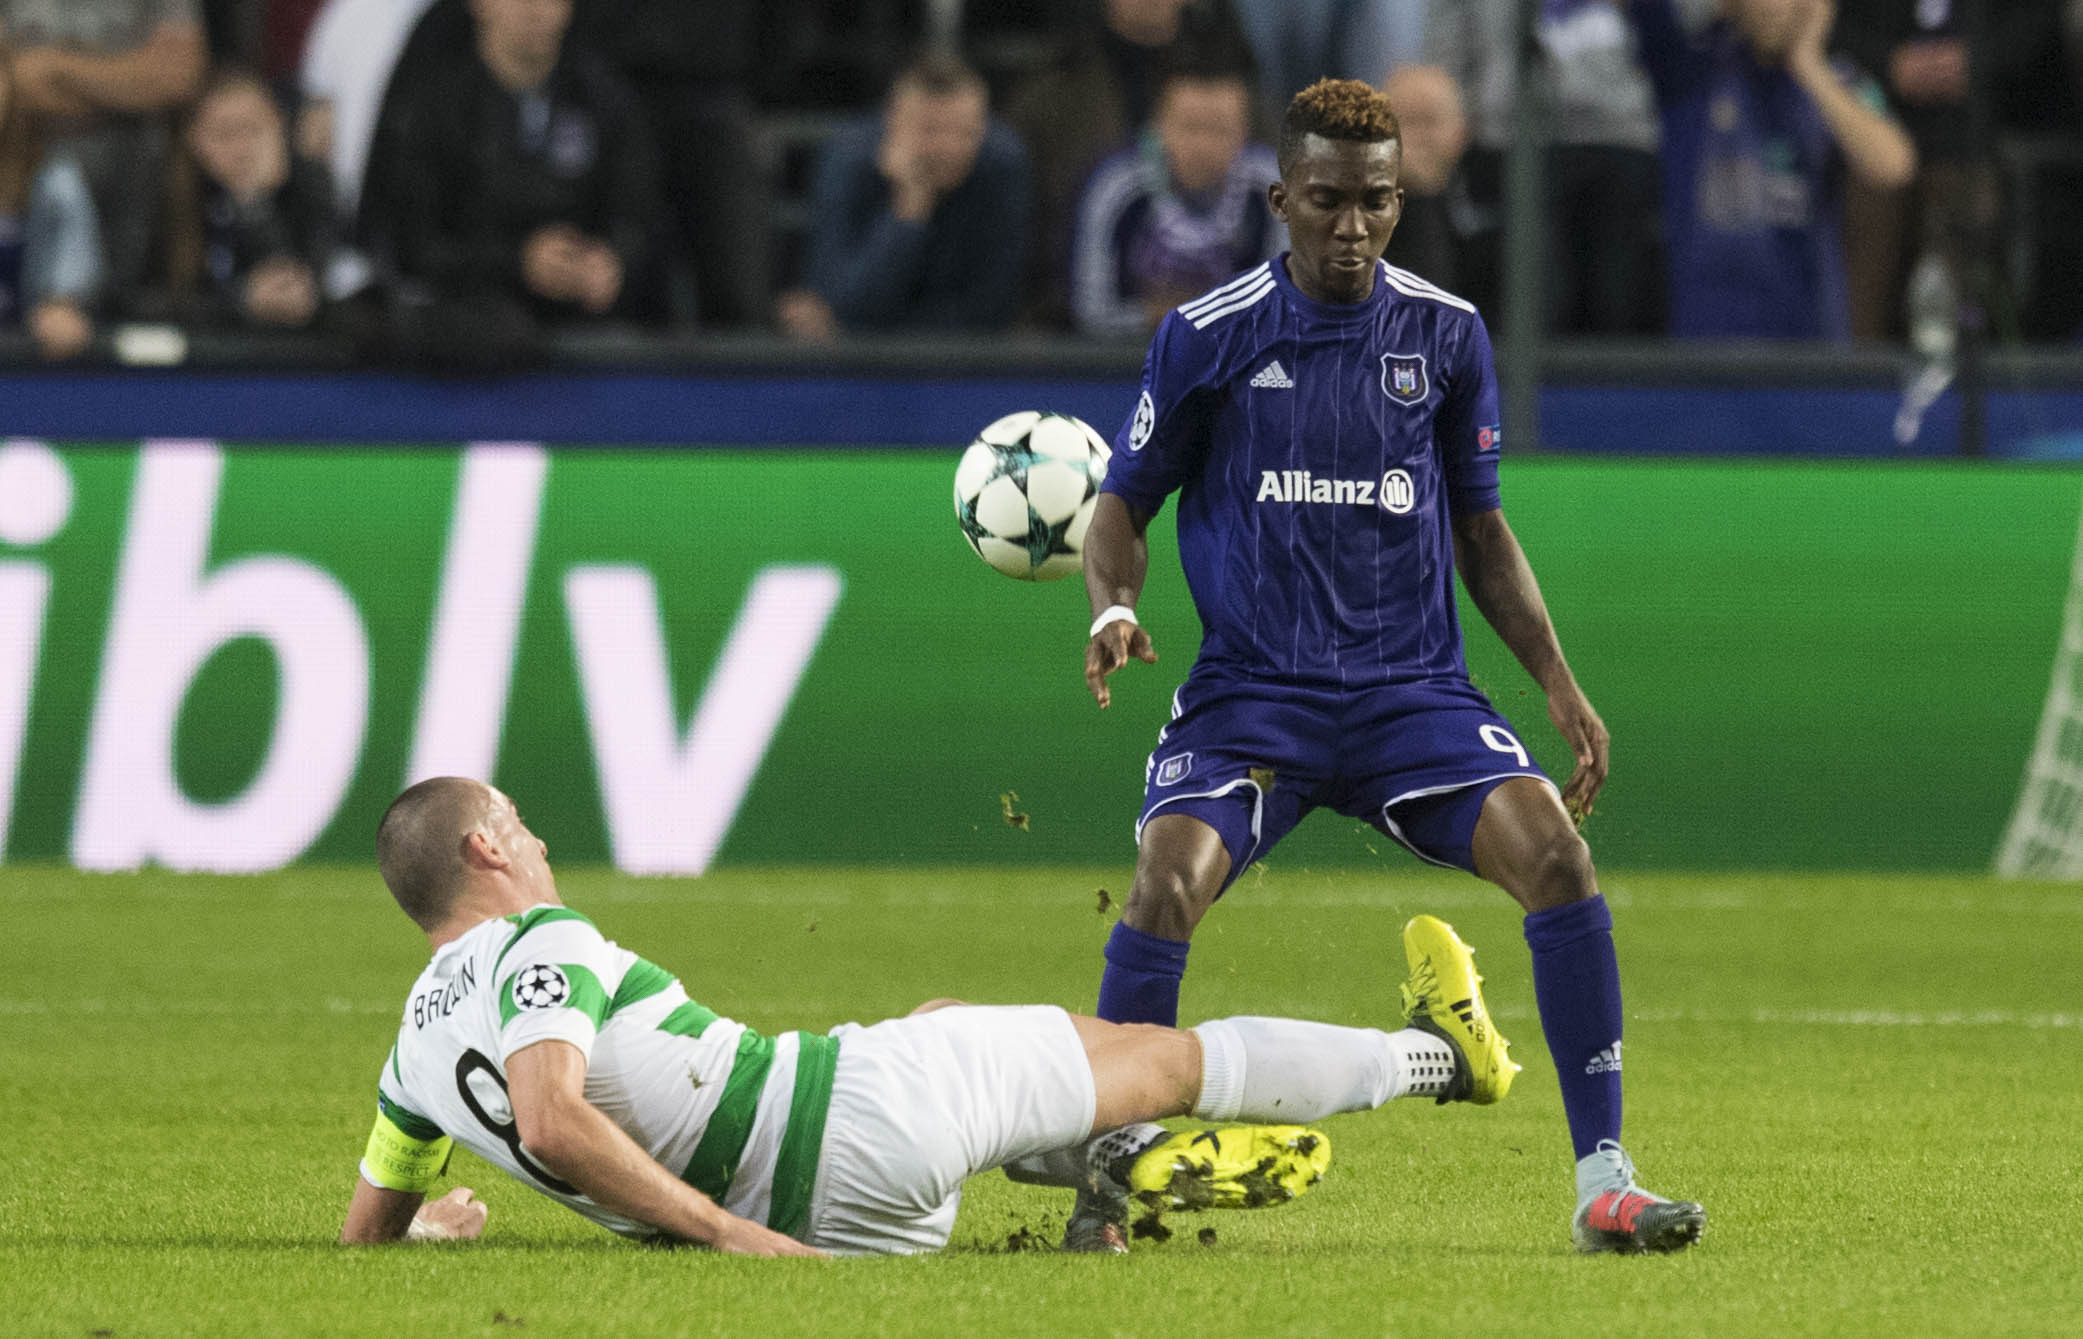 Scott Brown's injury is a headache for Celtic